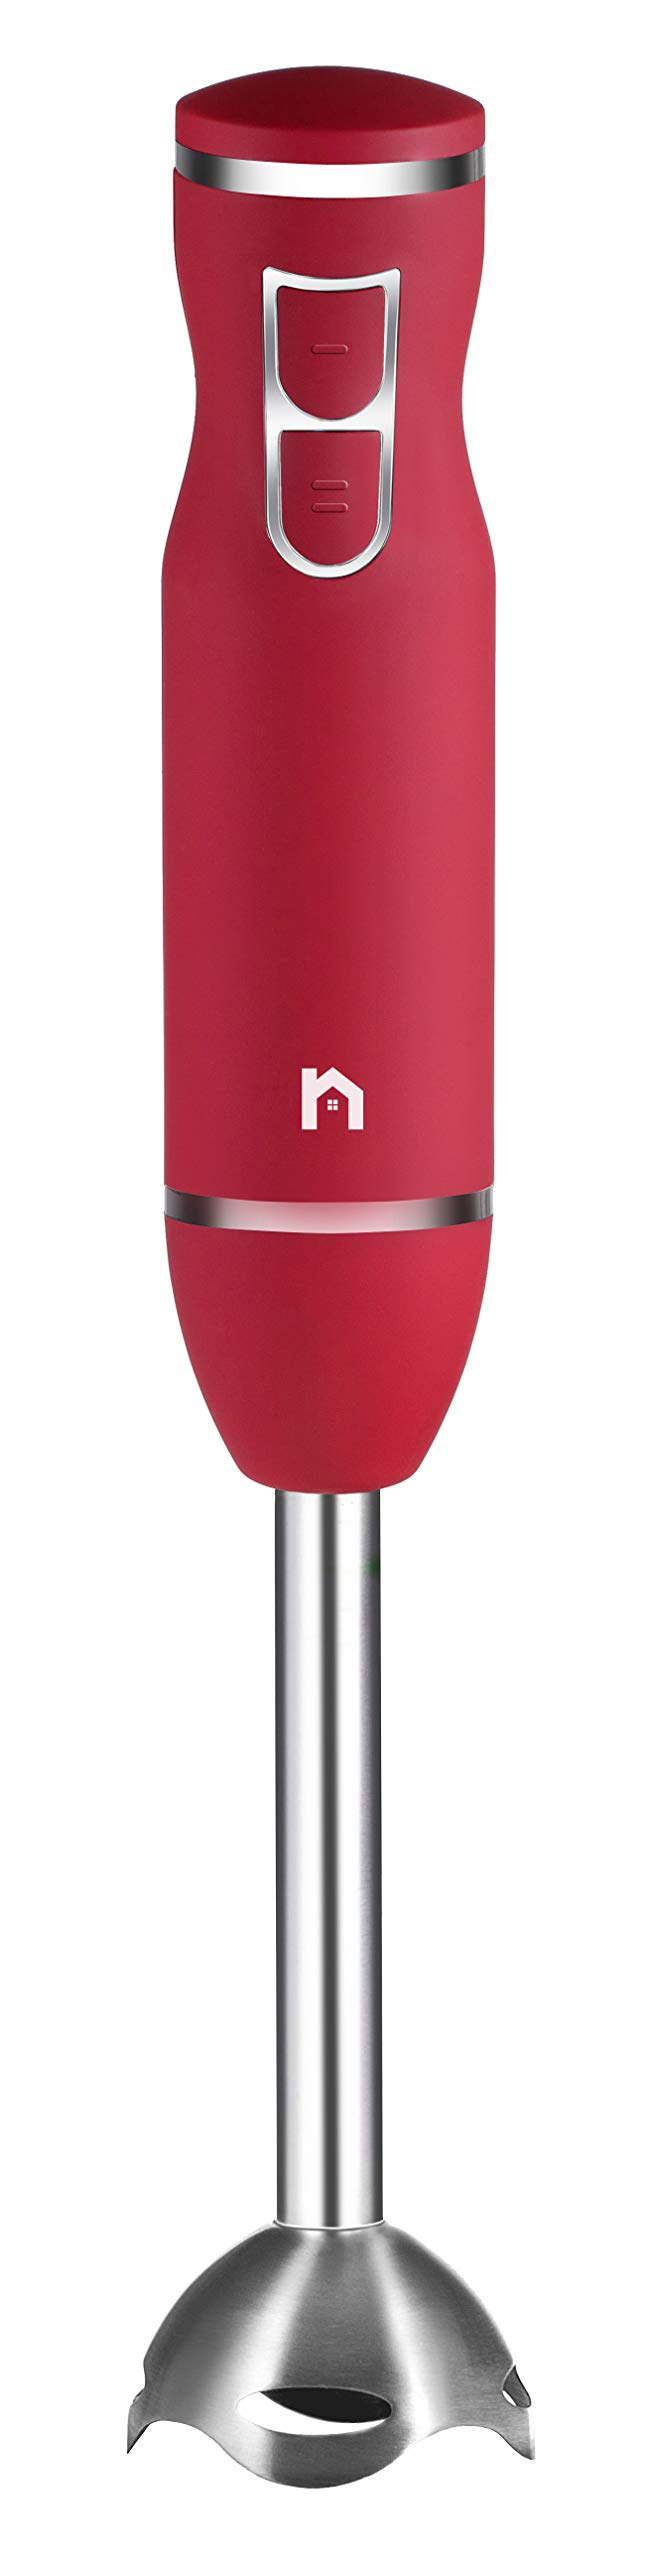 New House Kitchen Immersion Hand Blender 2 Speed Stick Mixer with Stainless Steel Shaft & Blade, 300 Watts Easily Food, Mixes Sauces, Purees Soups, Smoothies, and Dips, Red by New House Kitchen